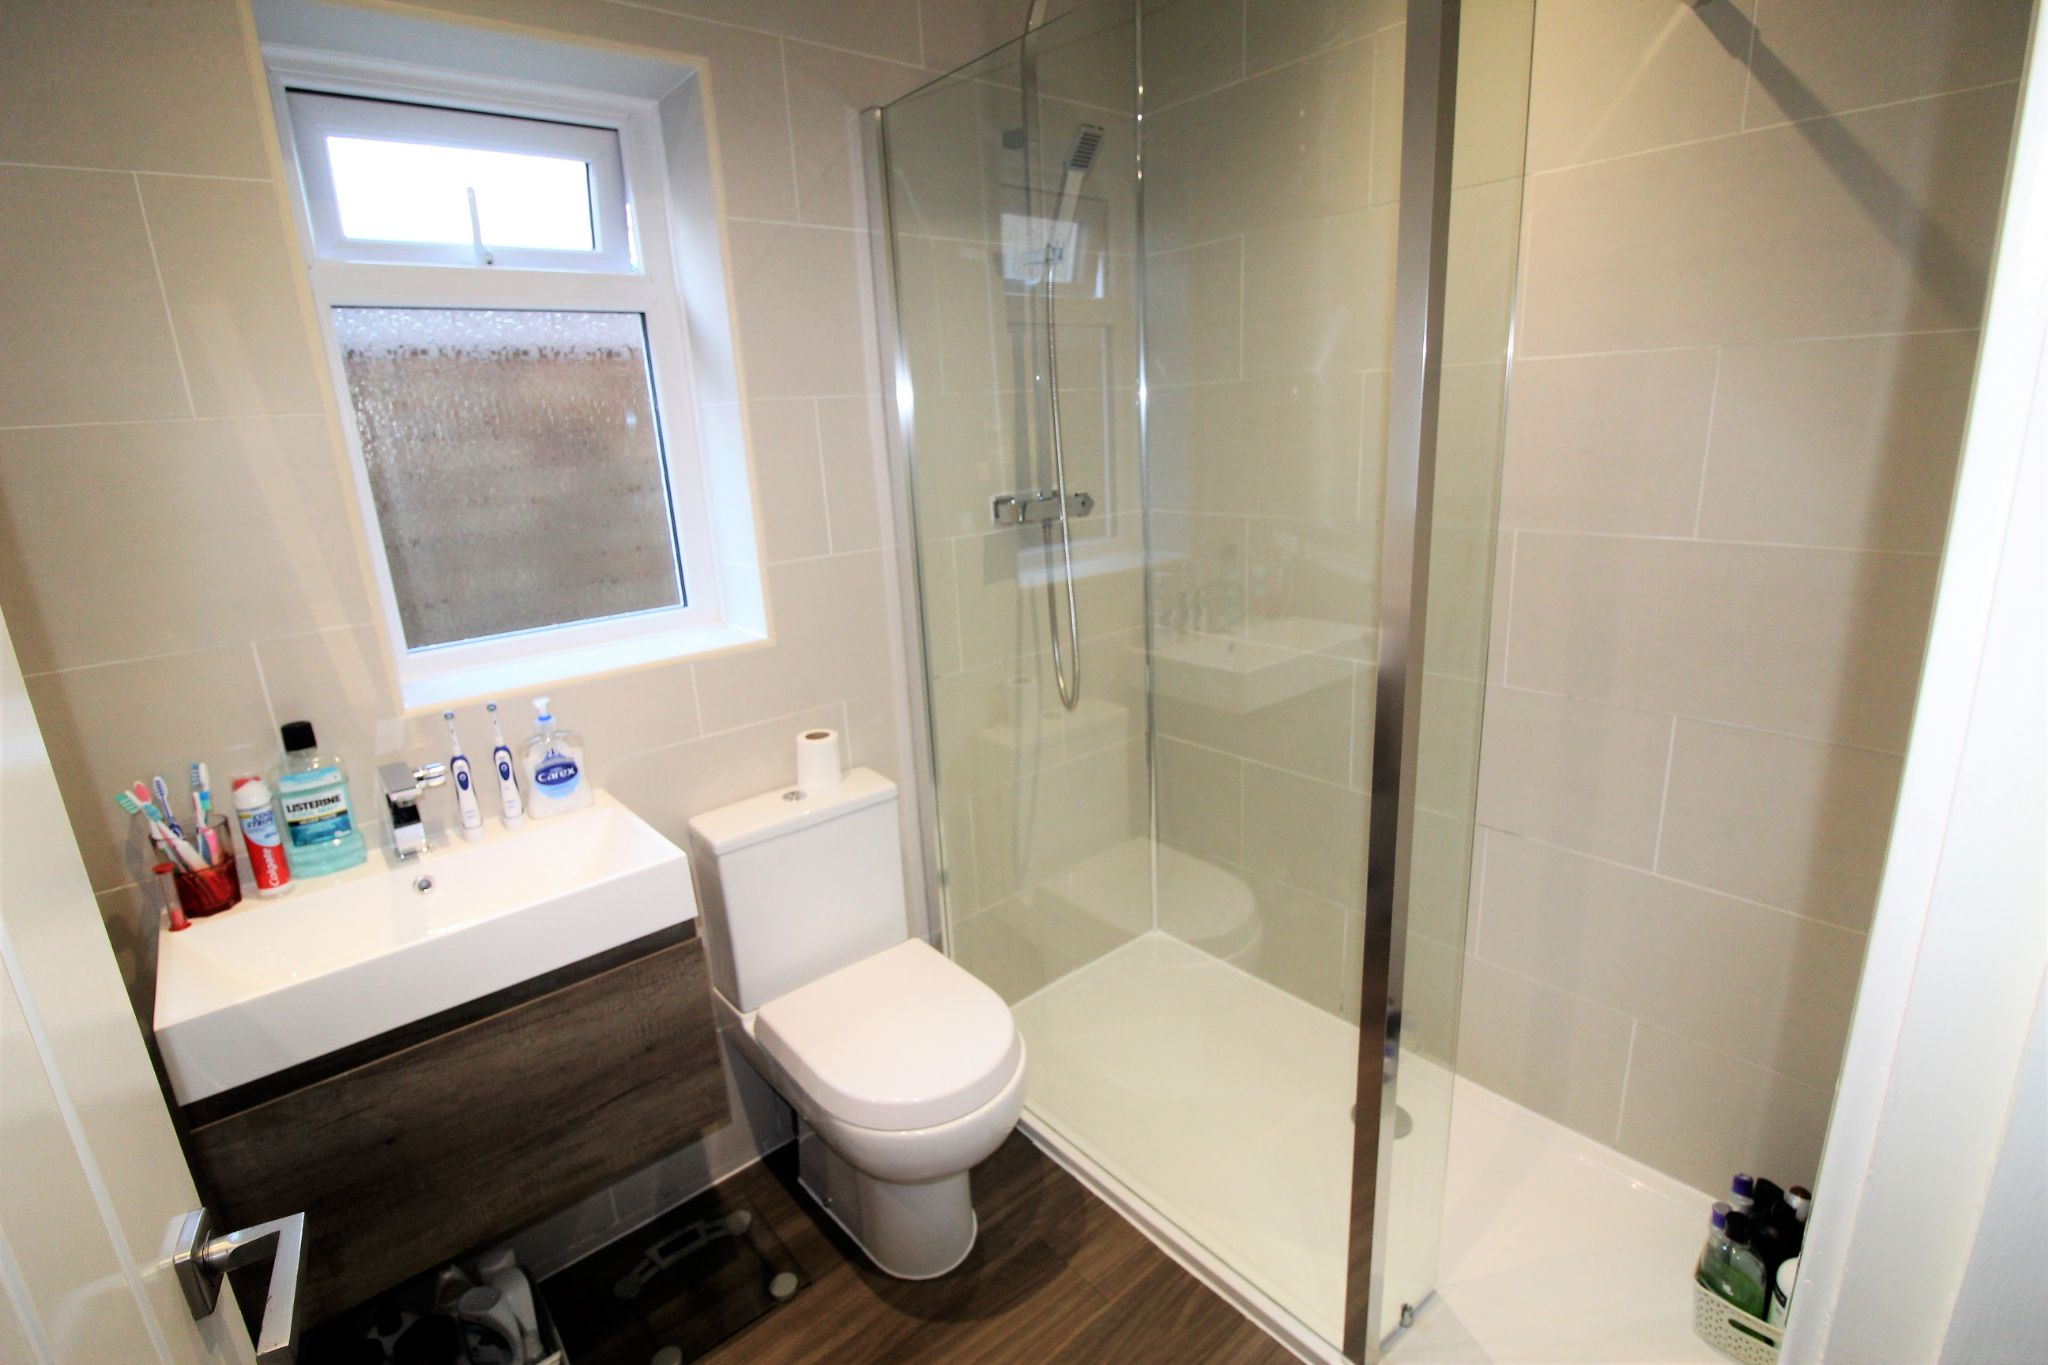 4 bedroom semi-detached bungalow SSTC in Brighouse - Shower Room